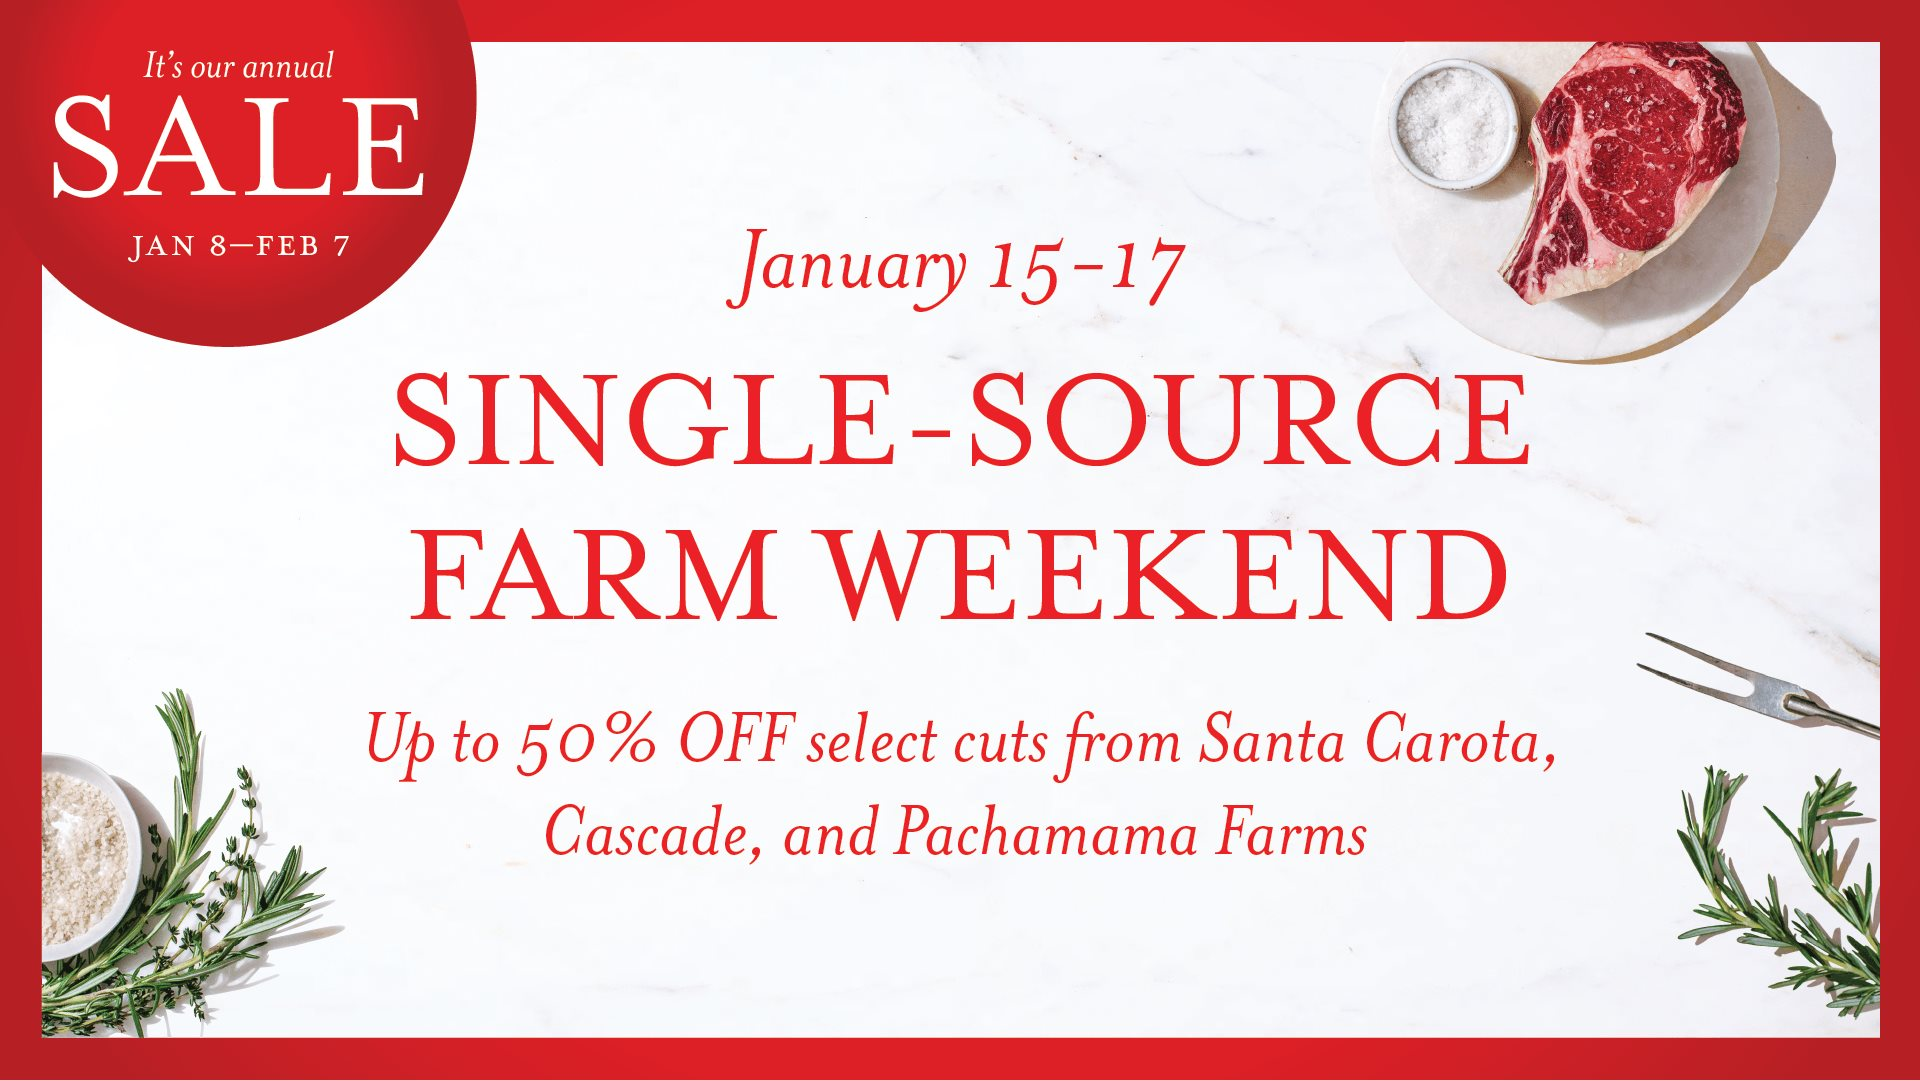 Single Source Farm Weekend at Eataly Boston.